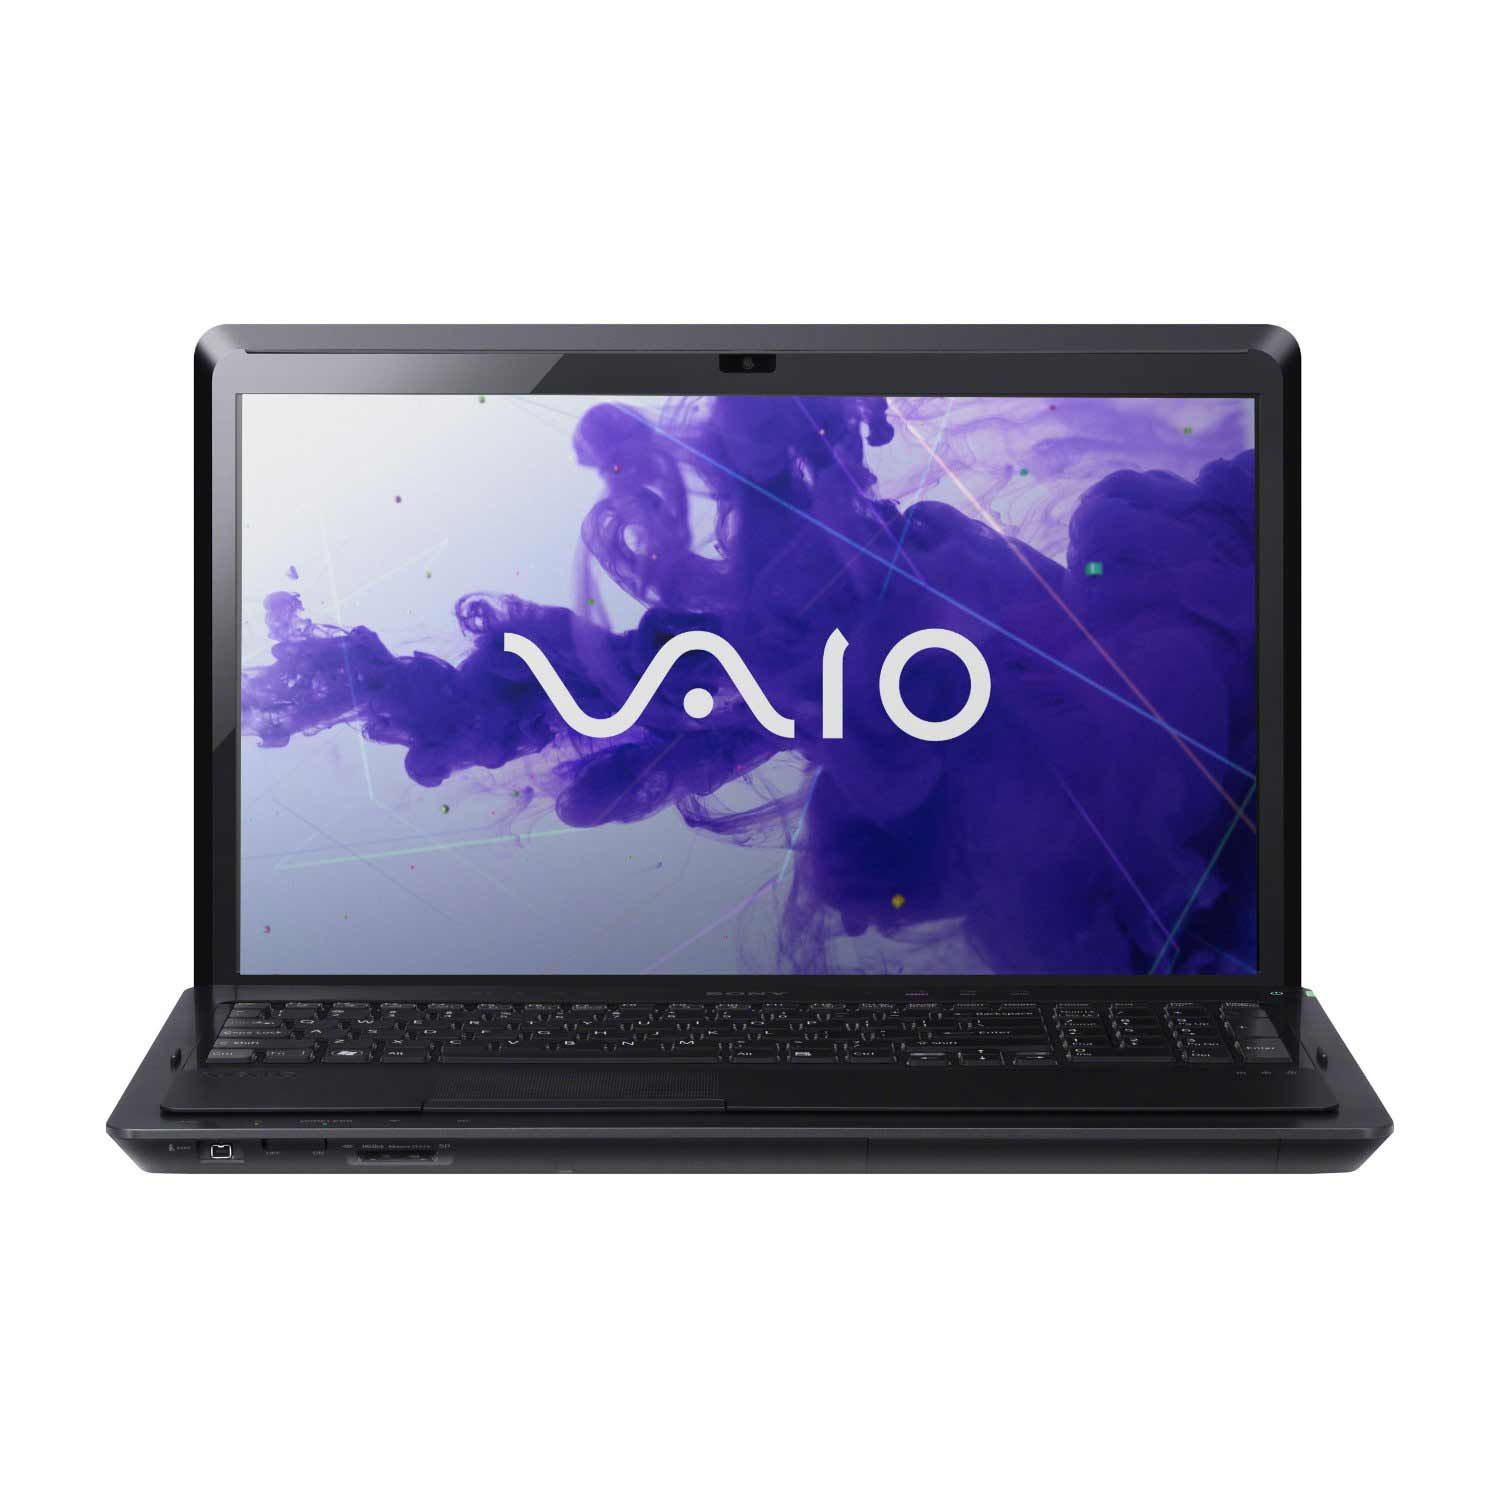 Sony VAIO F2 Series VPCF234FXB Matte Black Workstation